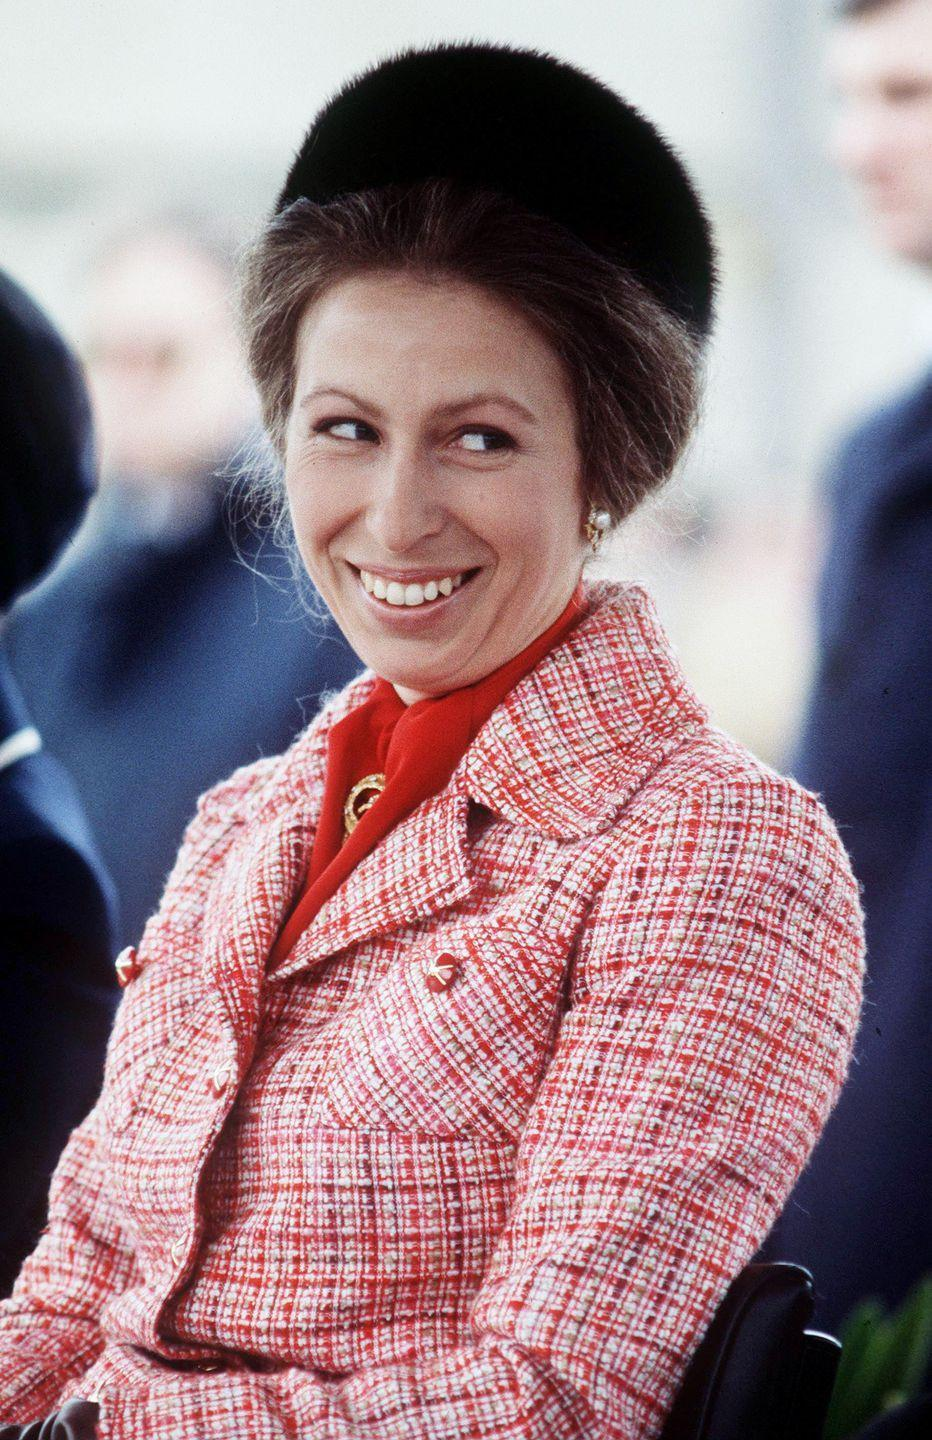 <p>Here, another take on Princess Anne wearing a blazer, but at this 1987 event, it was red tweed boucle paired with a fur pillbox hat. </p>